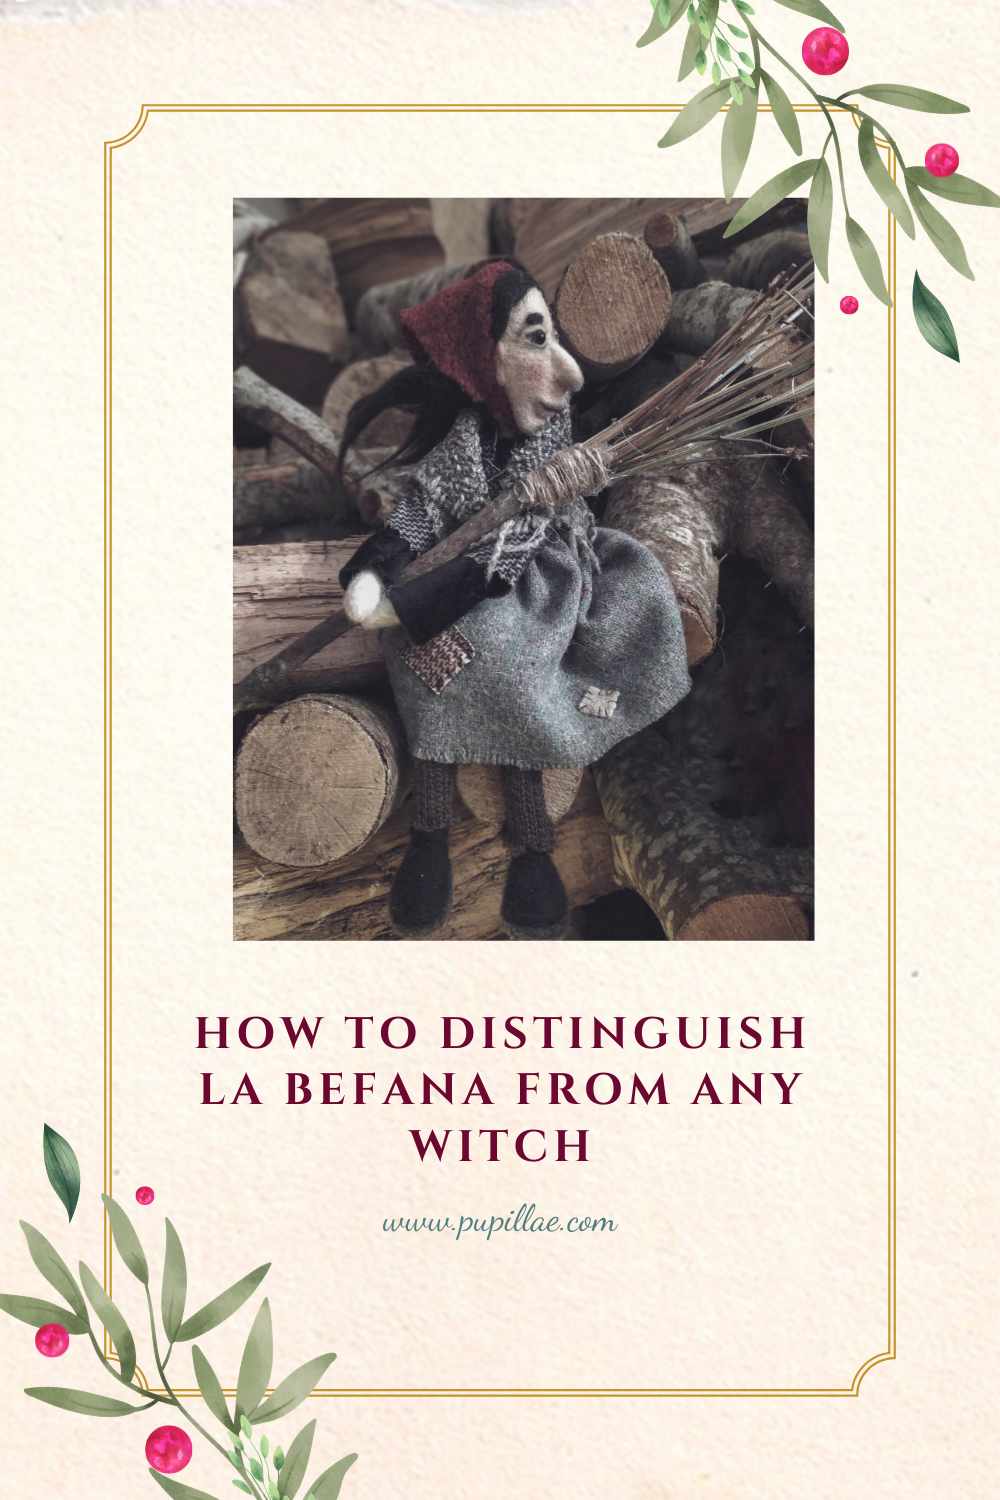 How to distiguish La Befana from any witch